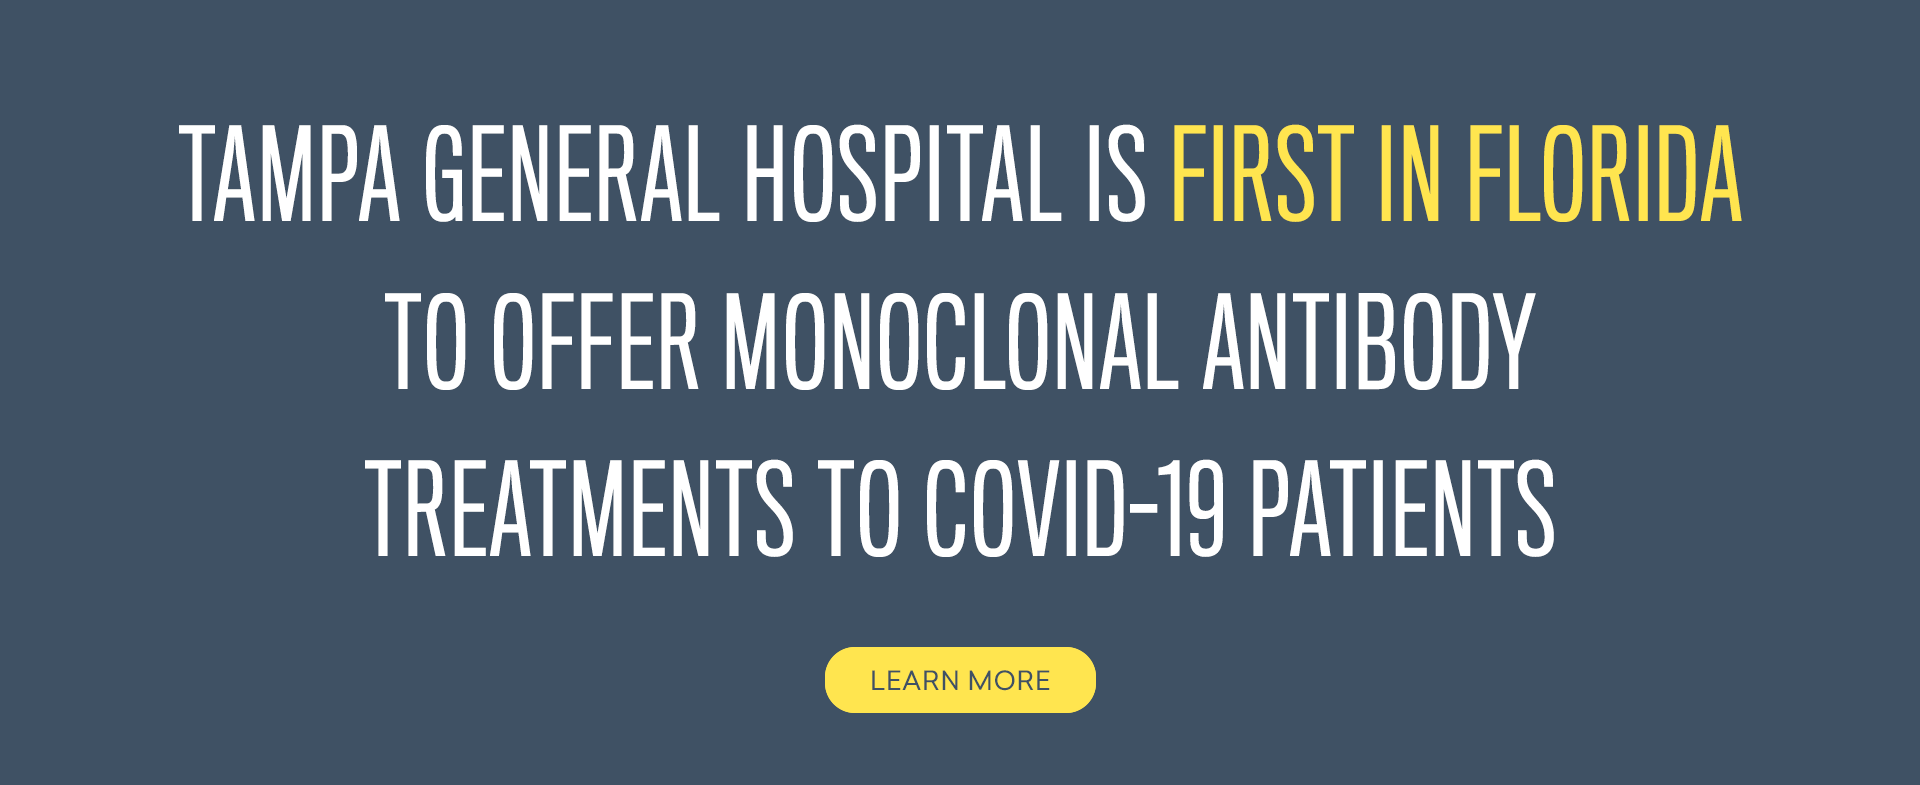 Tampa General Hospital is First in Florida To Offer Monoclonal Antibody Treatments to COVID-19 Patients